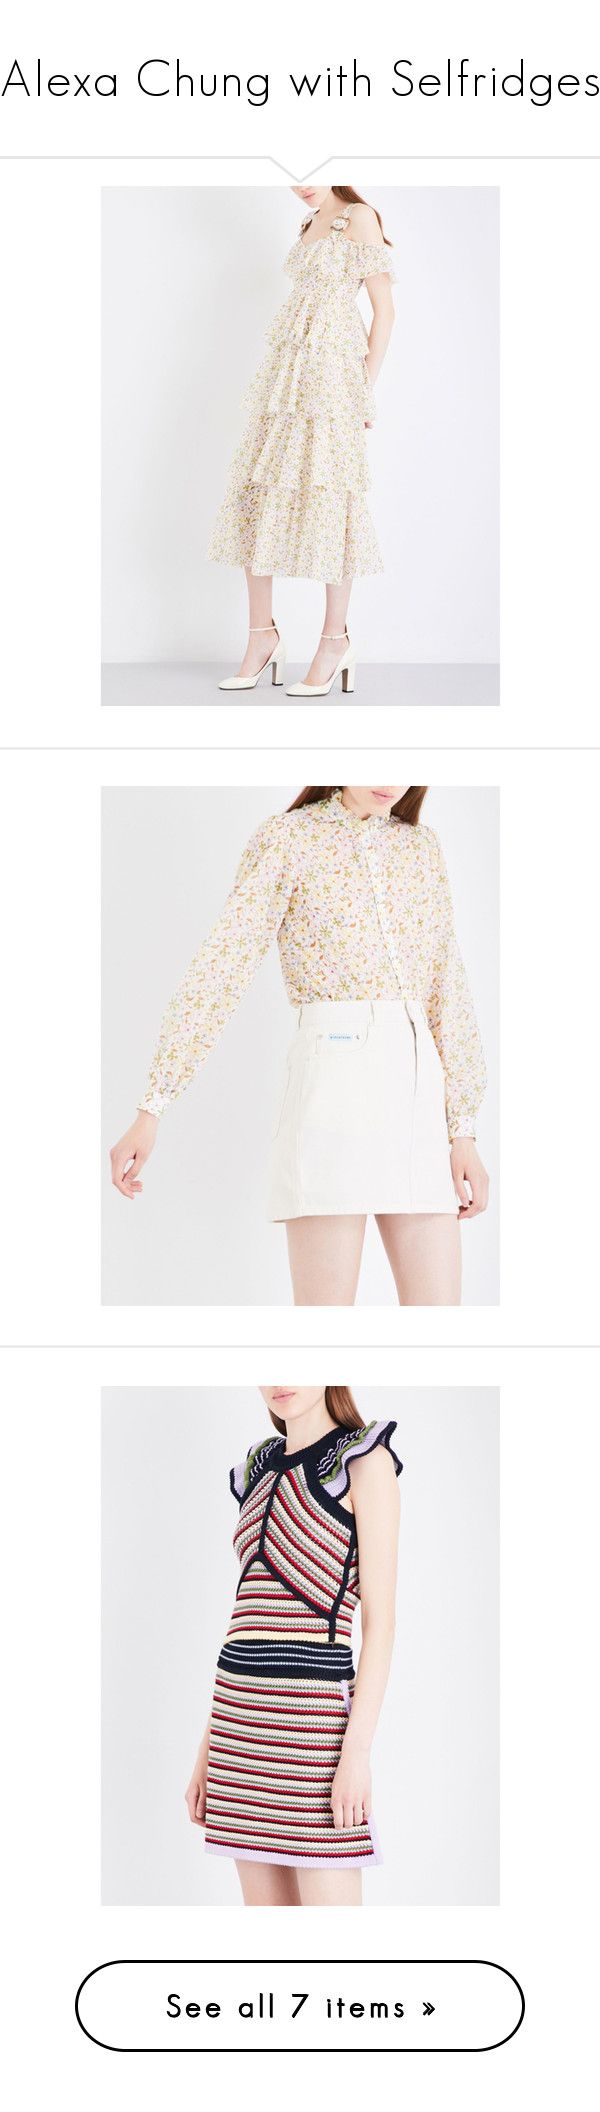 """""""Alexa Chung with Selfridges"""" by selfridges ❤ liked on Polyvore featuring dresses, floral dresses, short dresses, cut out shoulder dress, white flare dress, floral fit-and-flare dresses, tops, blouses, ruffle collar blouse and cotton voile blouse"""